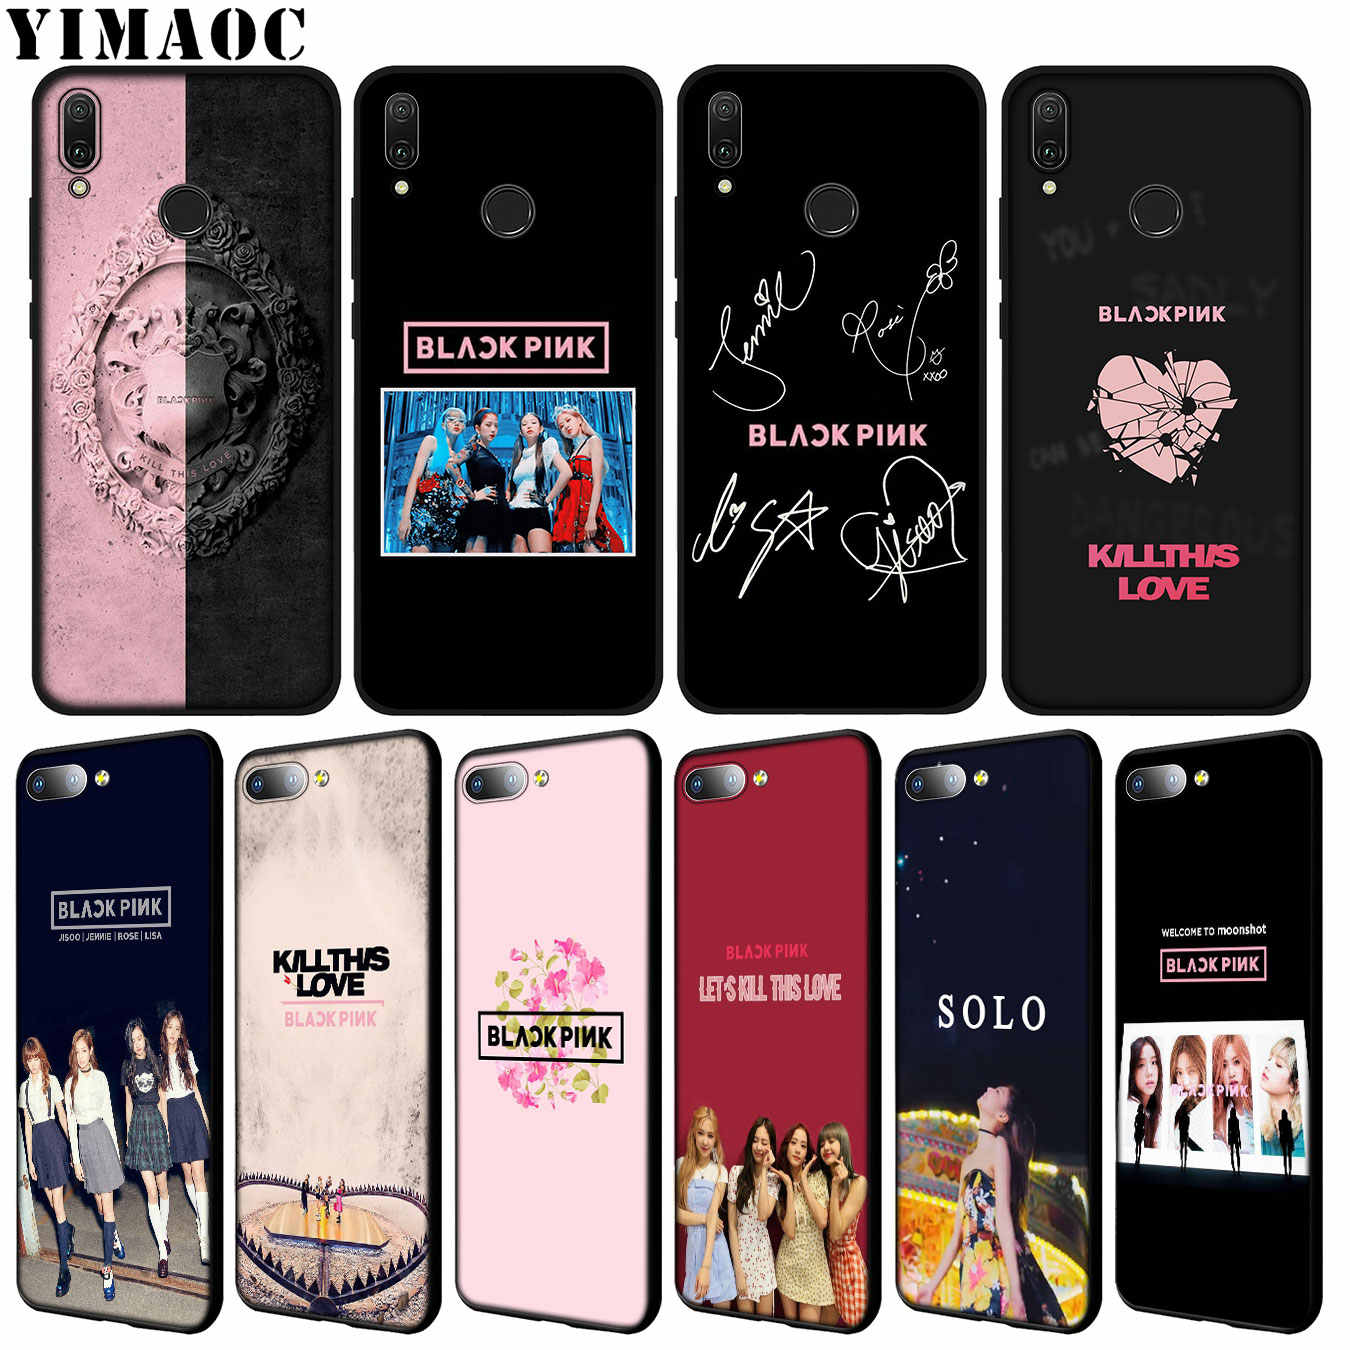 YIMAOC blackpink Kpop Soft Silicone Case for Huawei Y9 Y7 Y6 Prime 2019 Honor 20 8C 8X 8 9 9X 10 Lite 7C 7X 7A Pro Black Cover